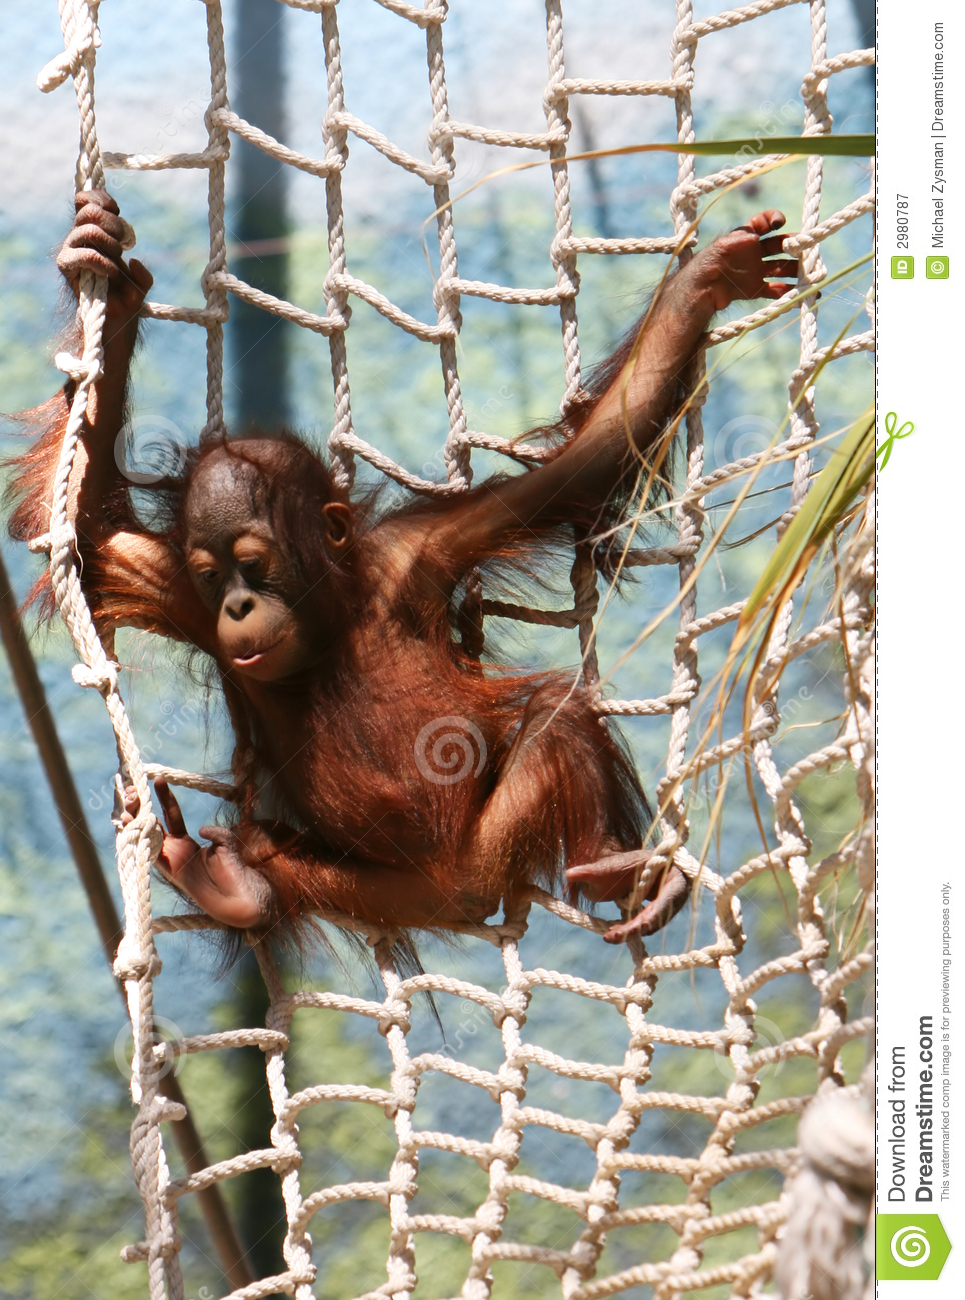 Young Primate